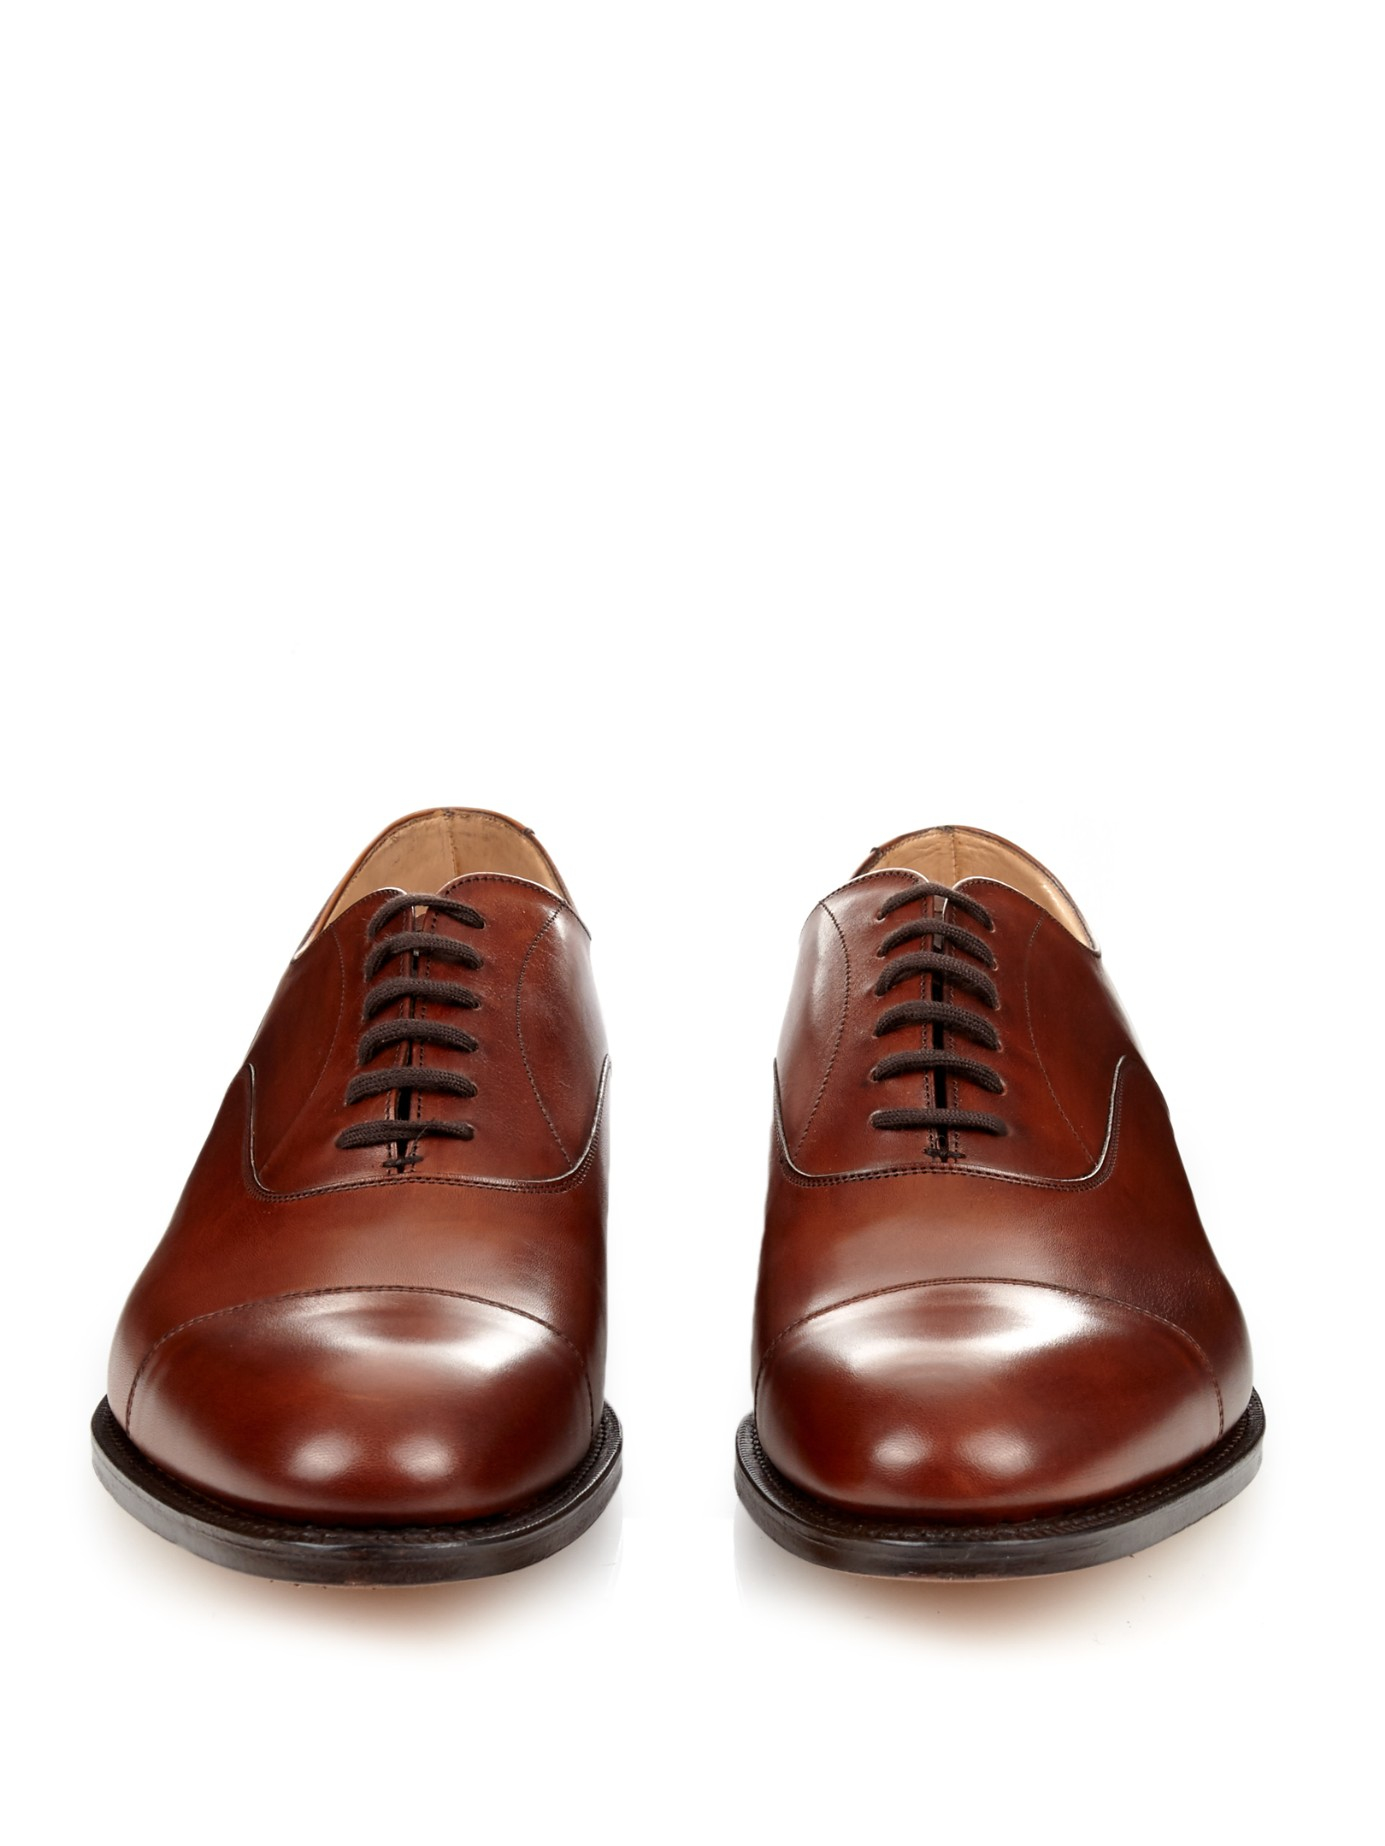 Lyst - Church'S Dubai Leather Oxford Shoes in Brown for Men Robert Graham Designer